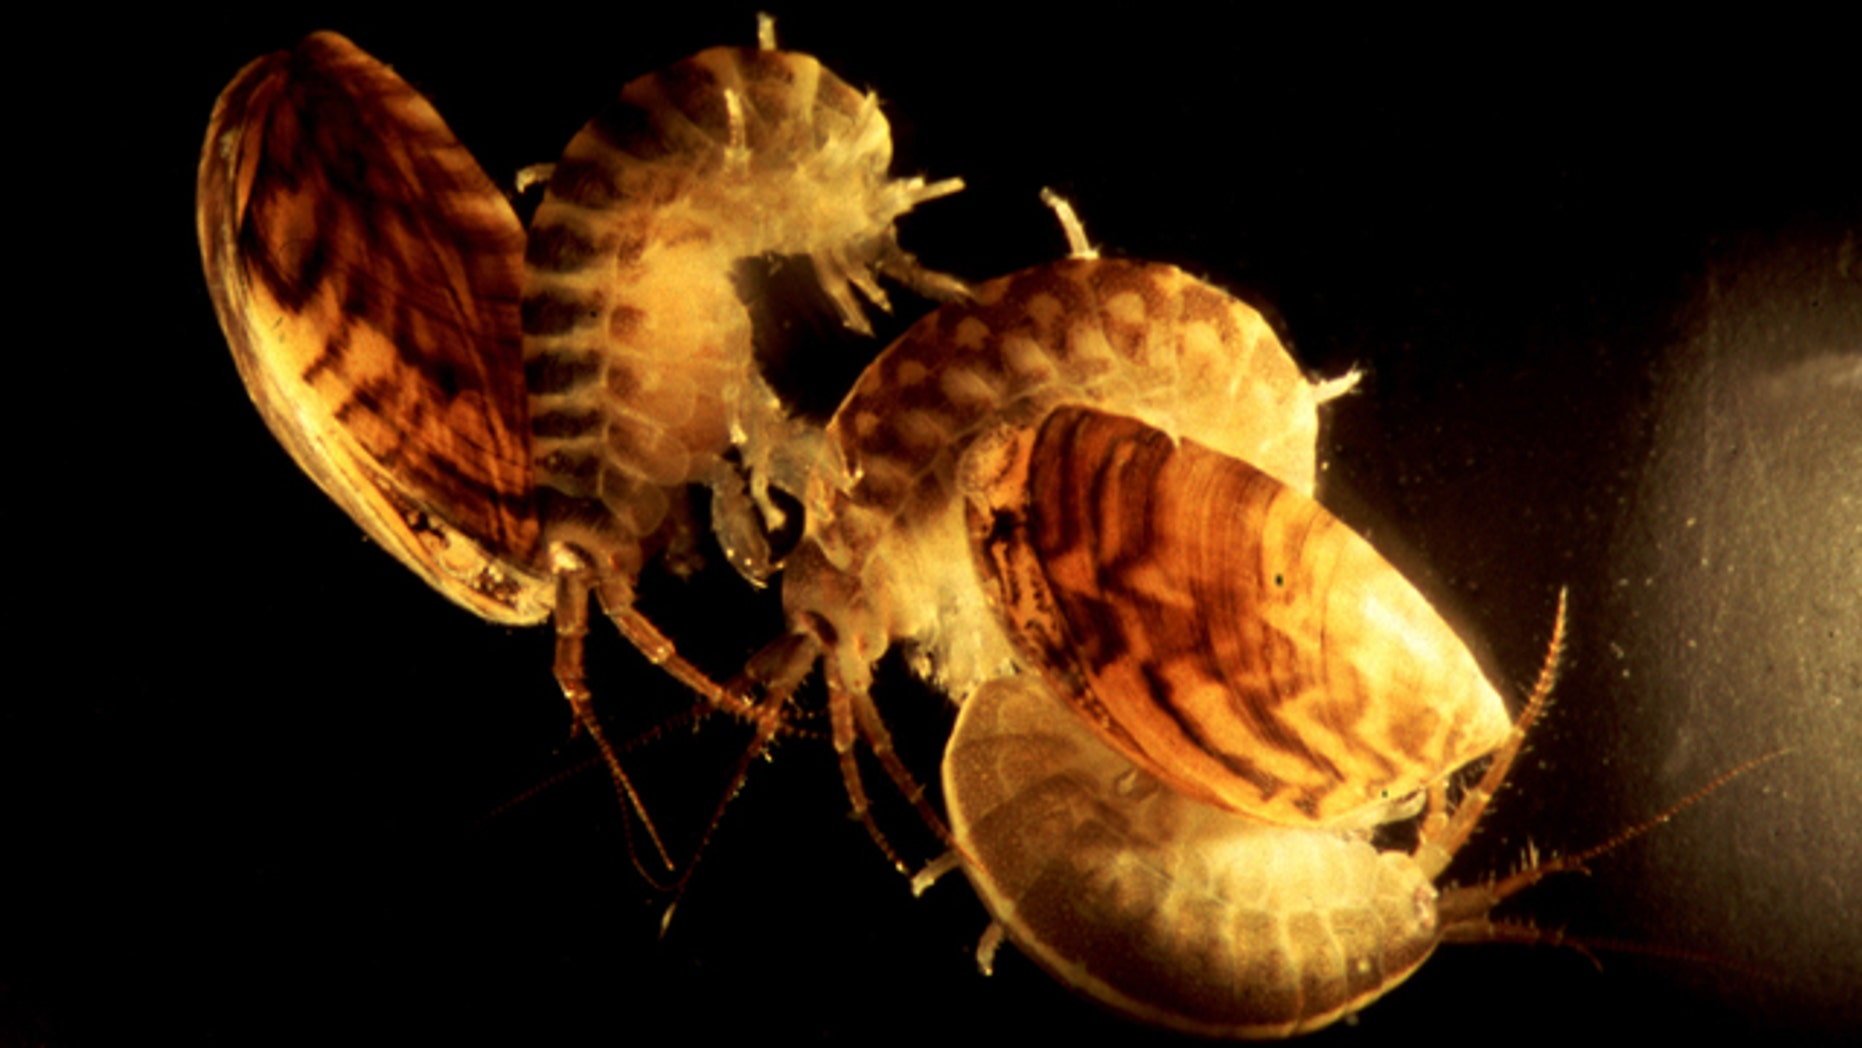 Dikerogammarus villosus may be tiny, but this crustacean is a vicious predator, shown here with zebra mussels.